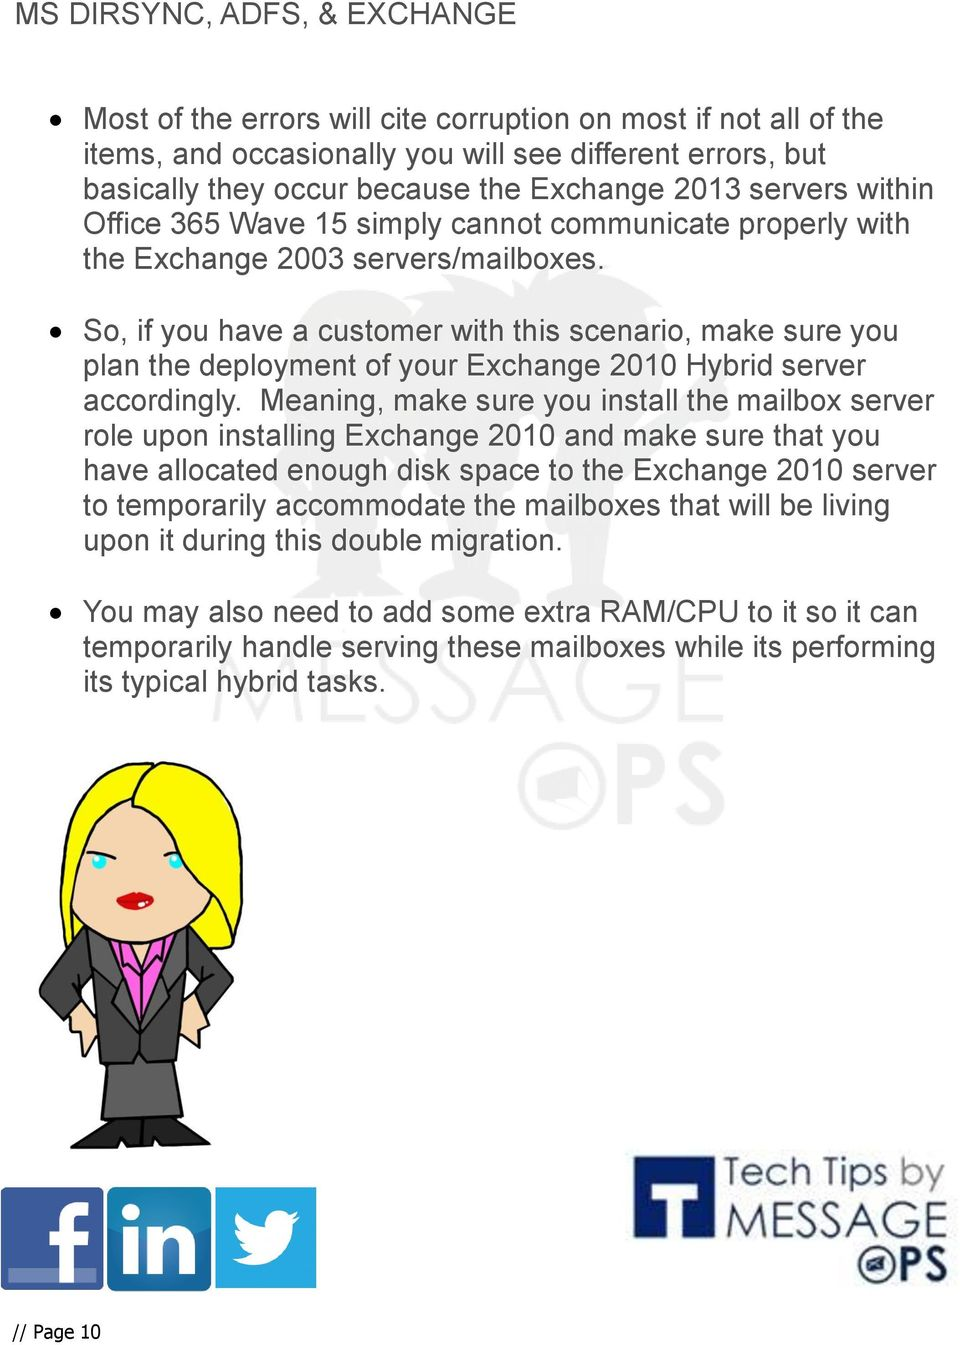 So, if you have a customer with this scenario, make sure you plan the deployment of your Exchange 2010 Hybrid server accordingly.